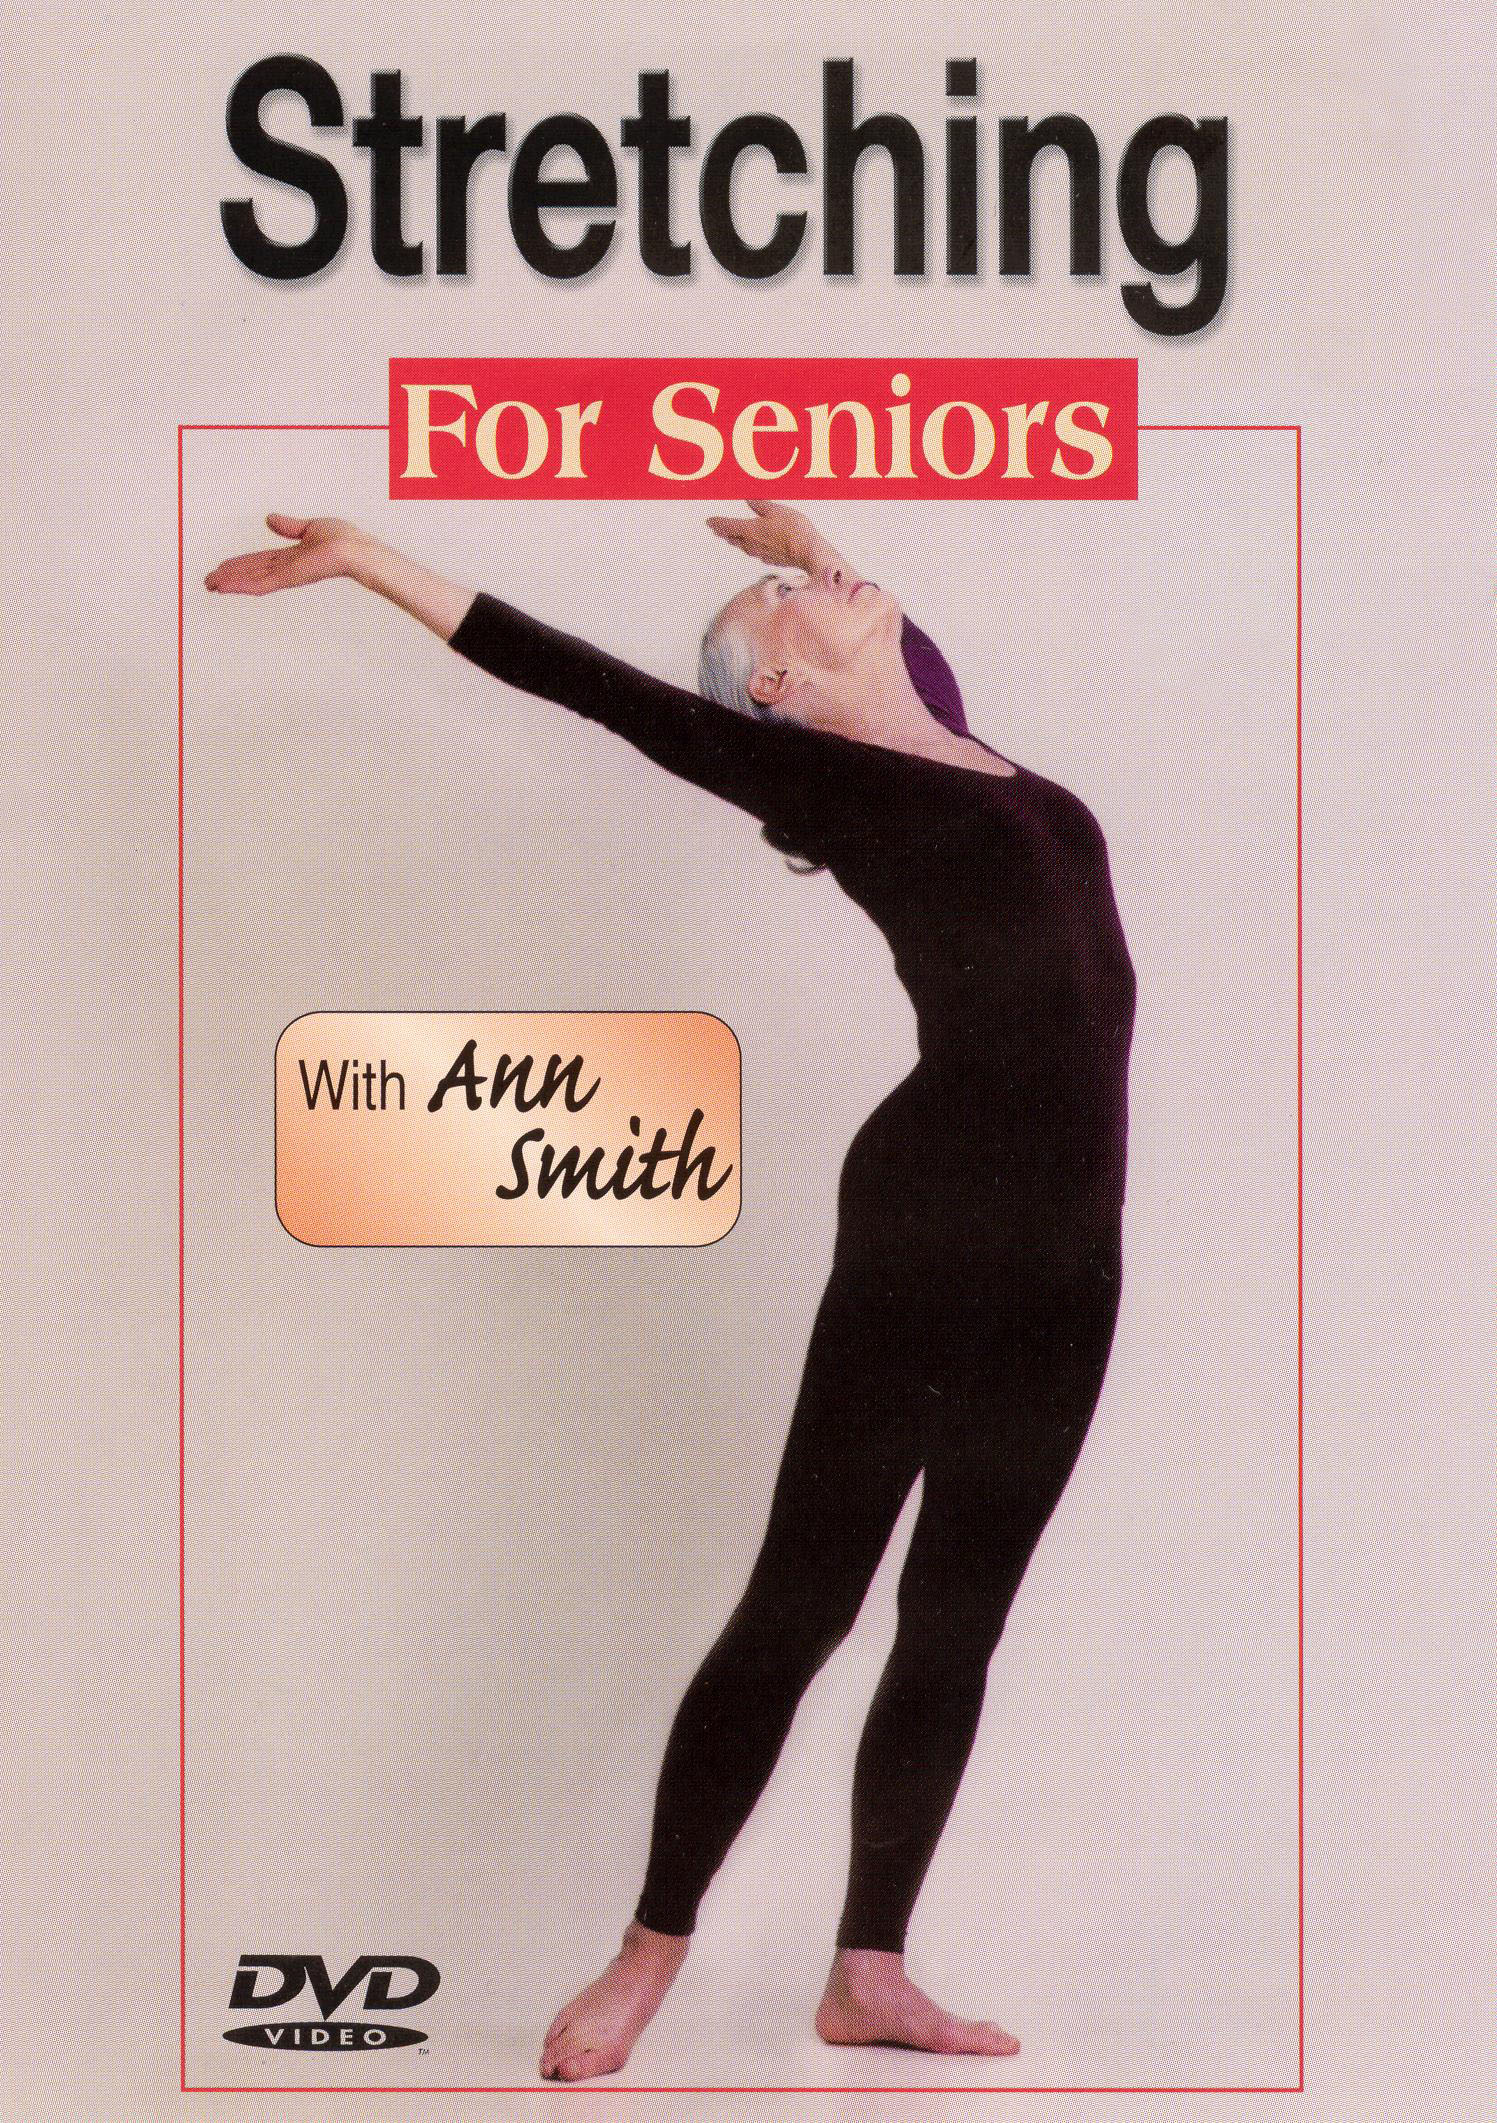 Ann Smith: Stretching for Seniors